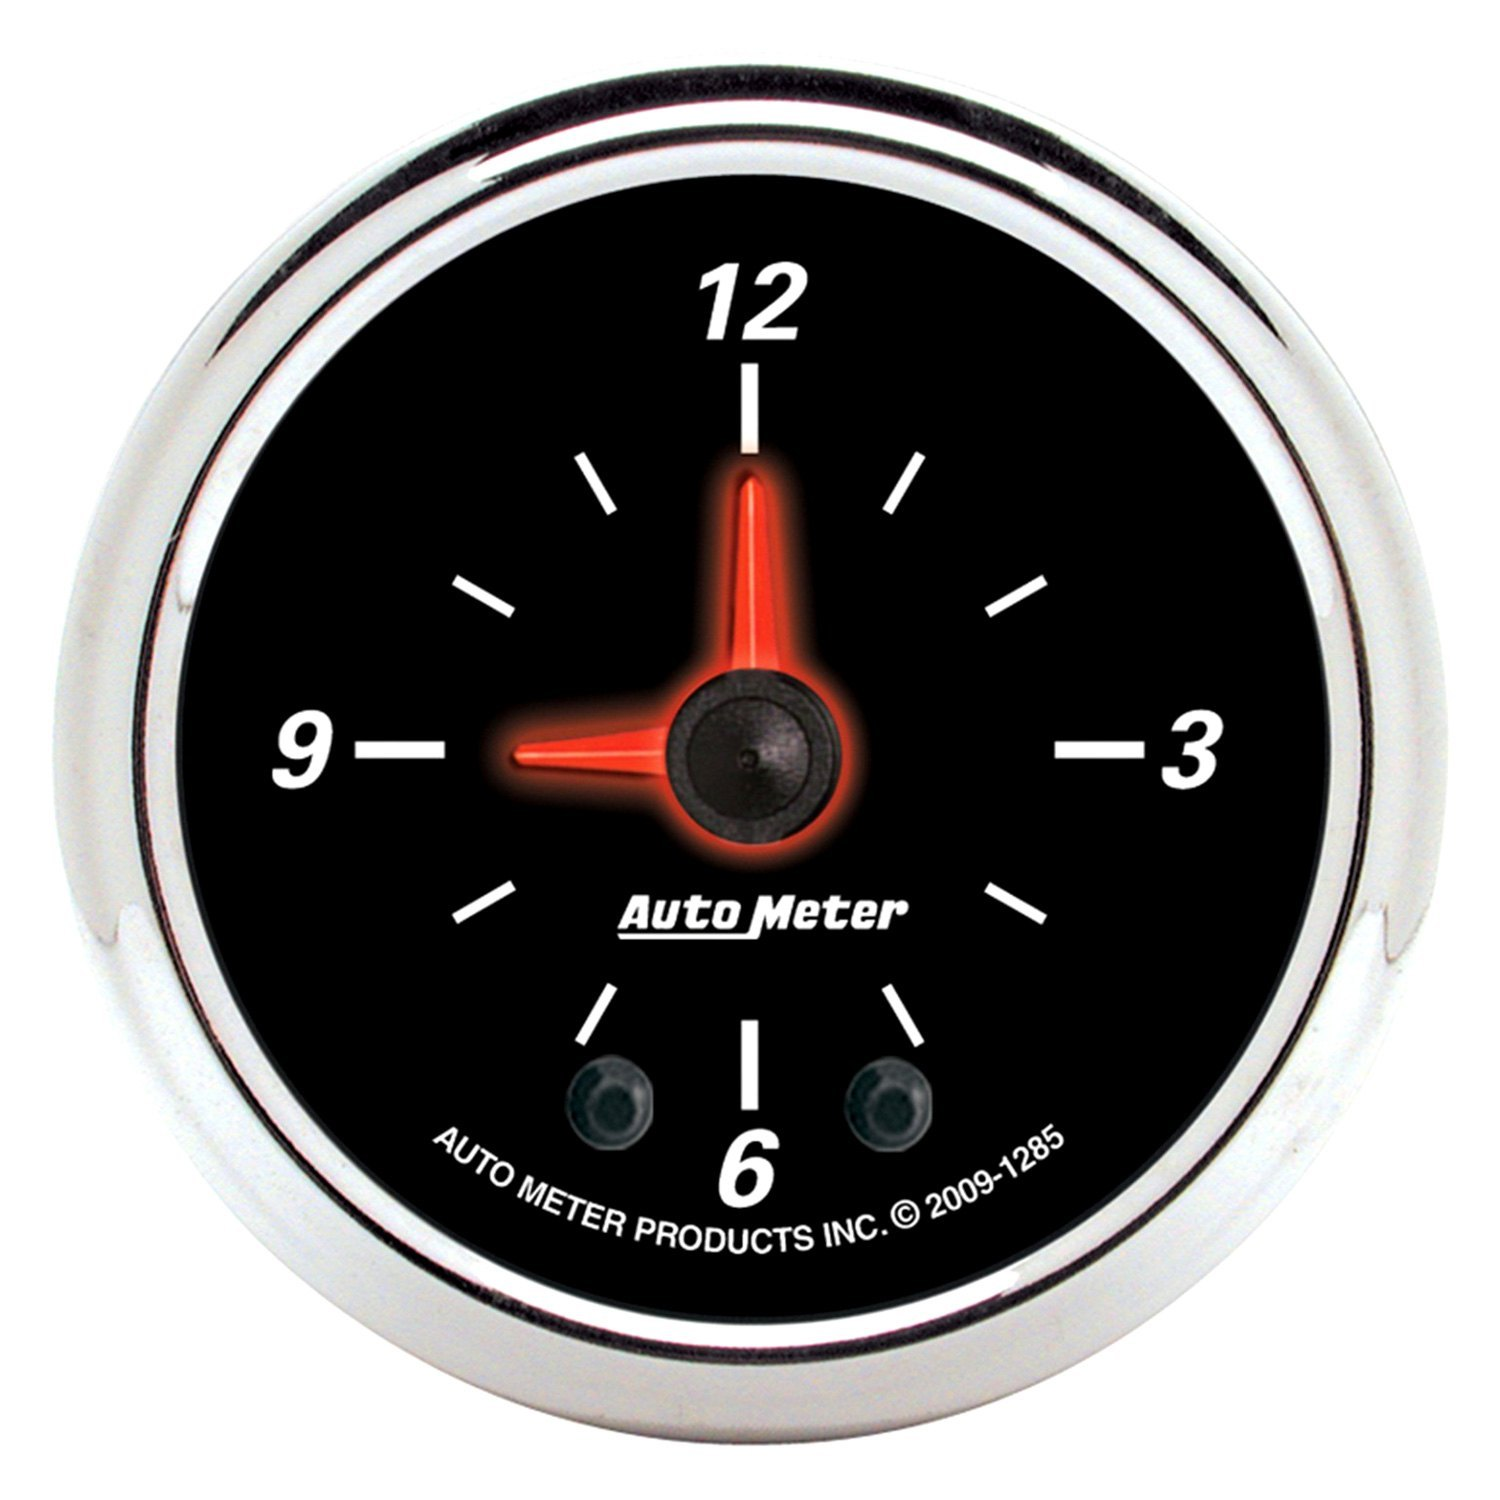 Which gauge is better: 16 or 12 Well-founded answers please